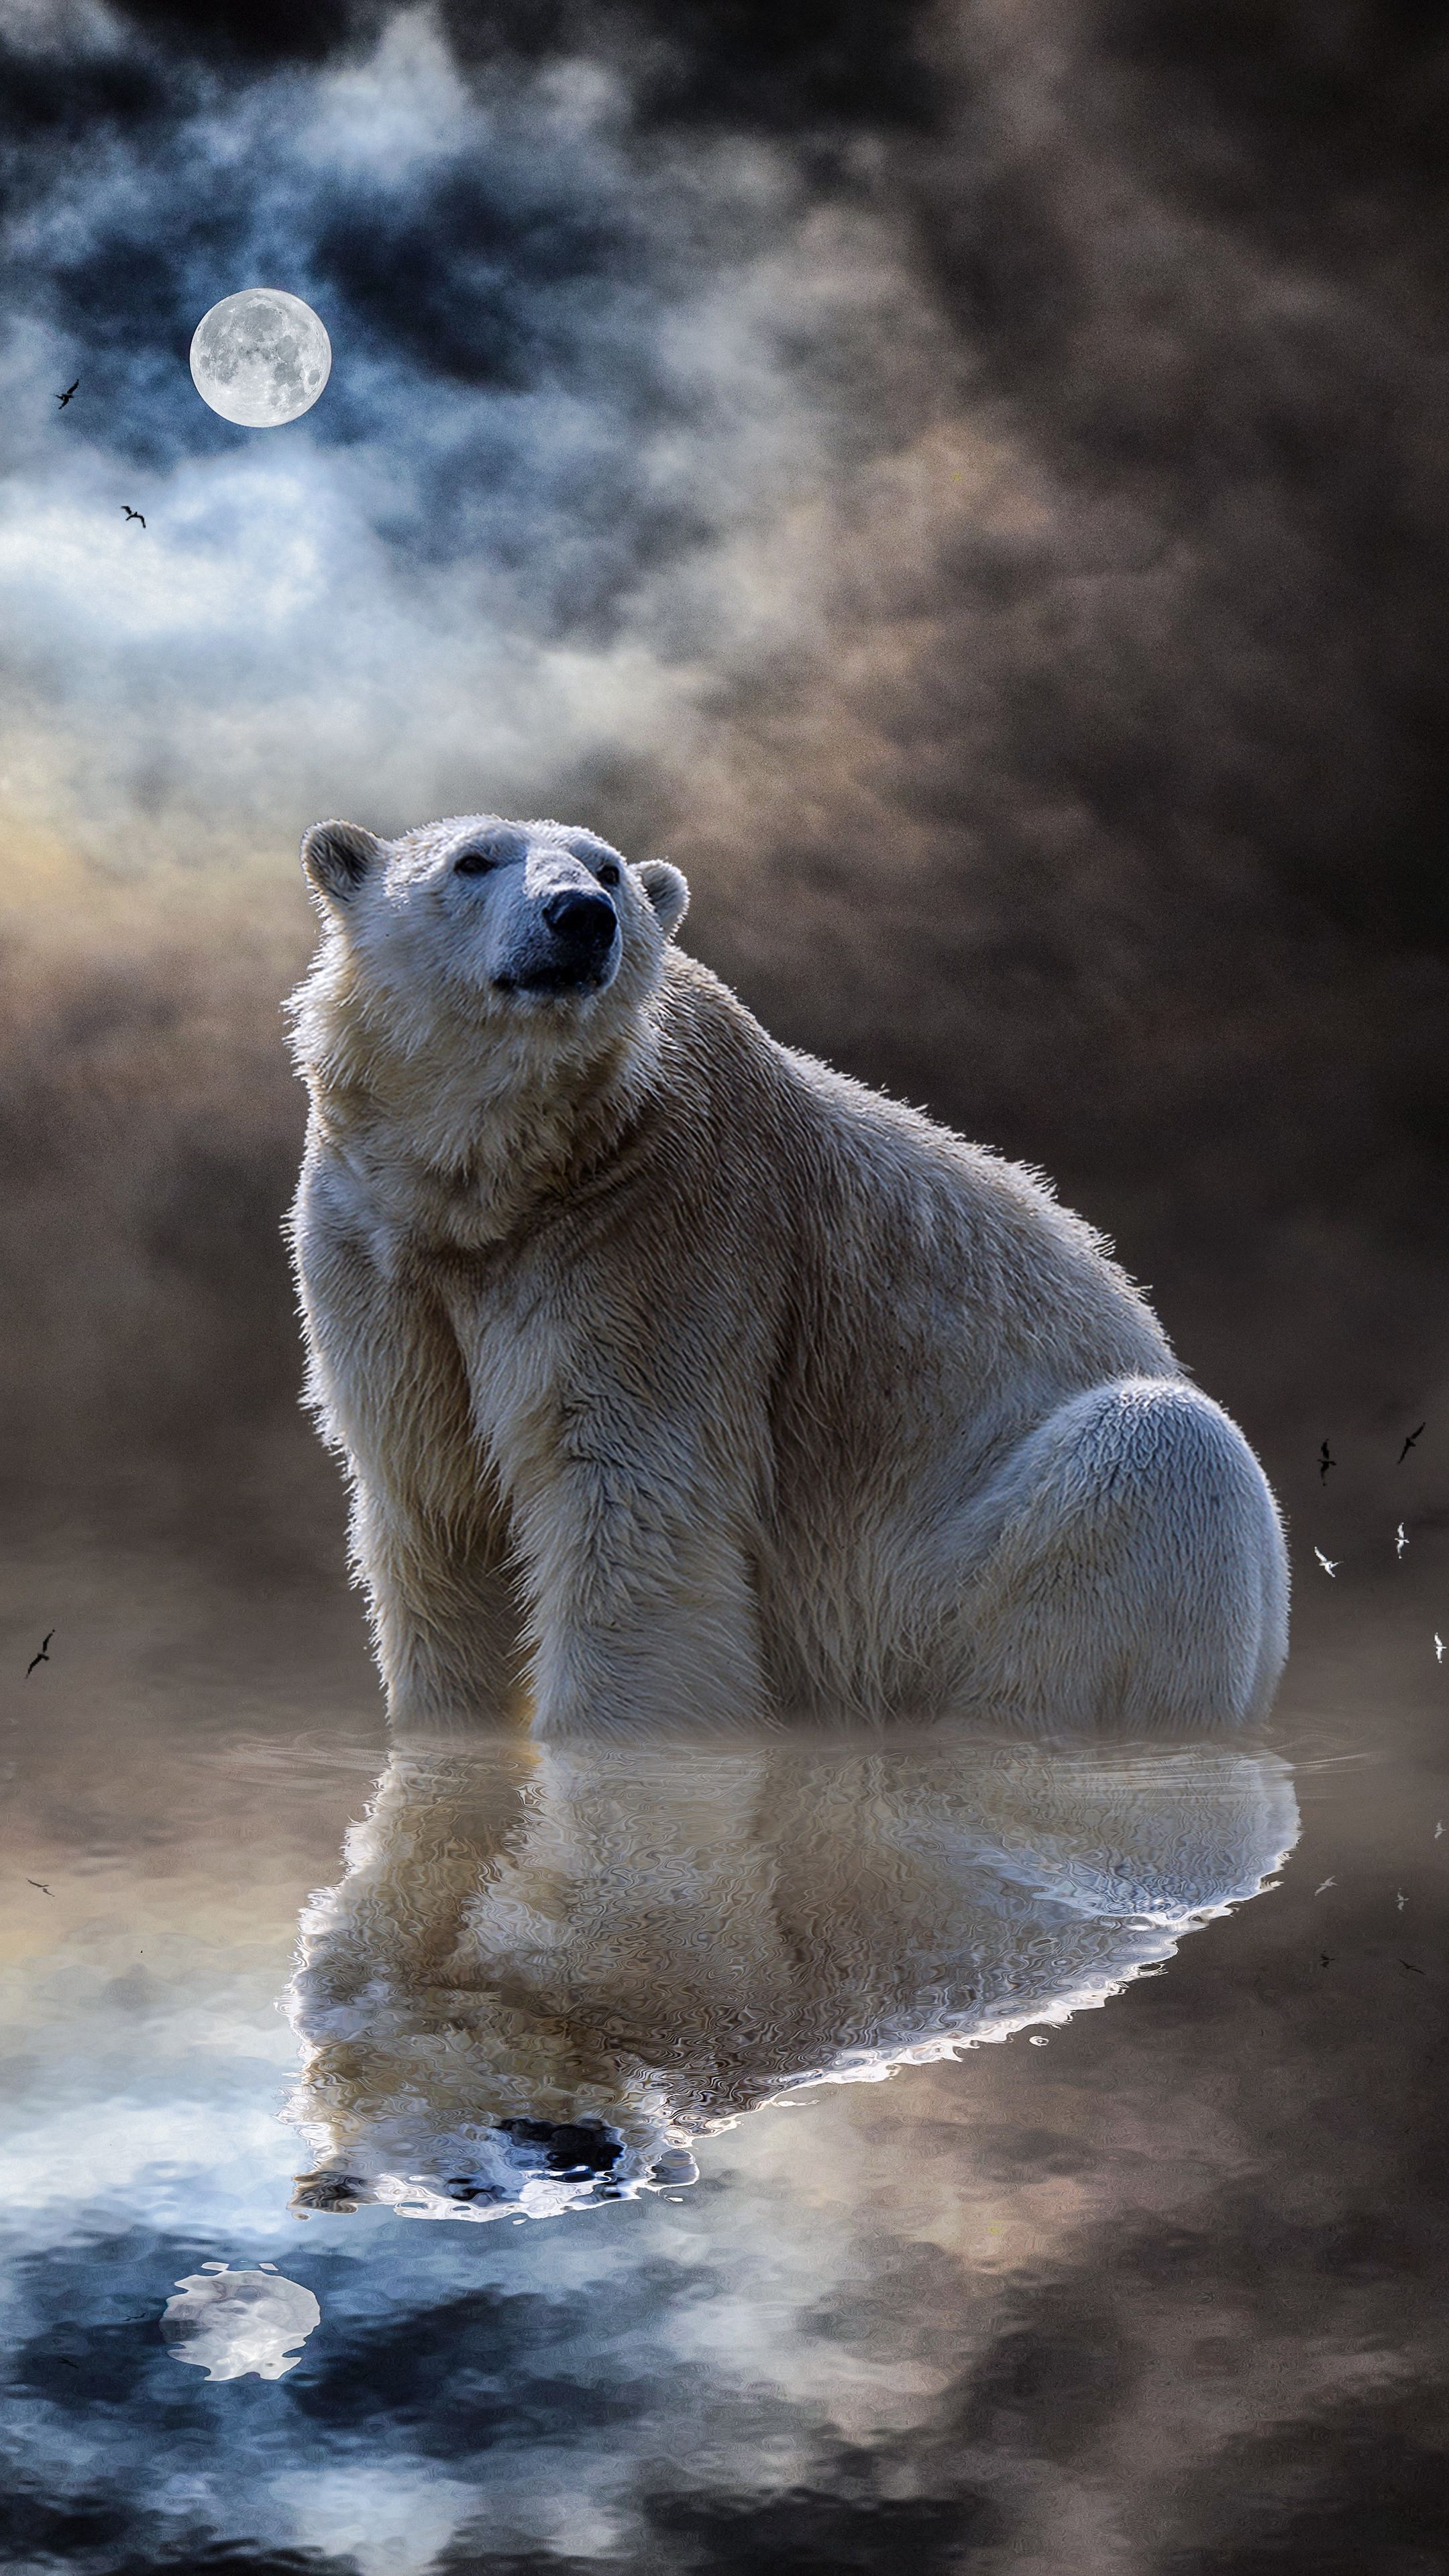 Animals polarbear ocean reflection wallpapers hd 4k